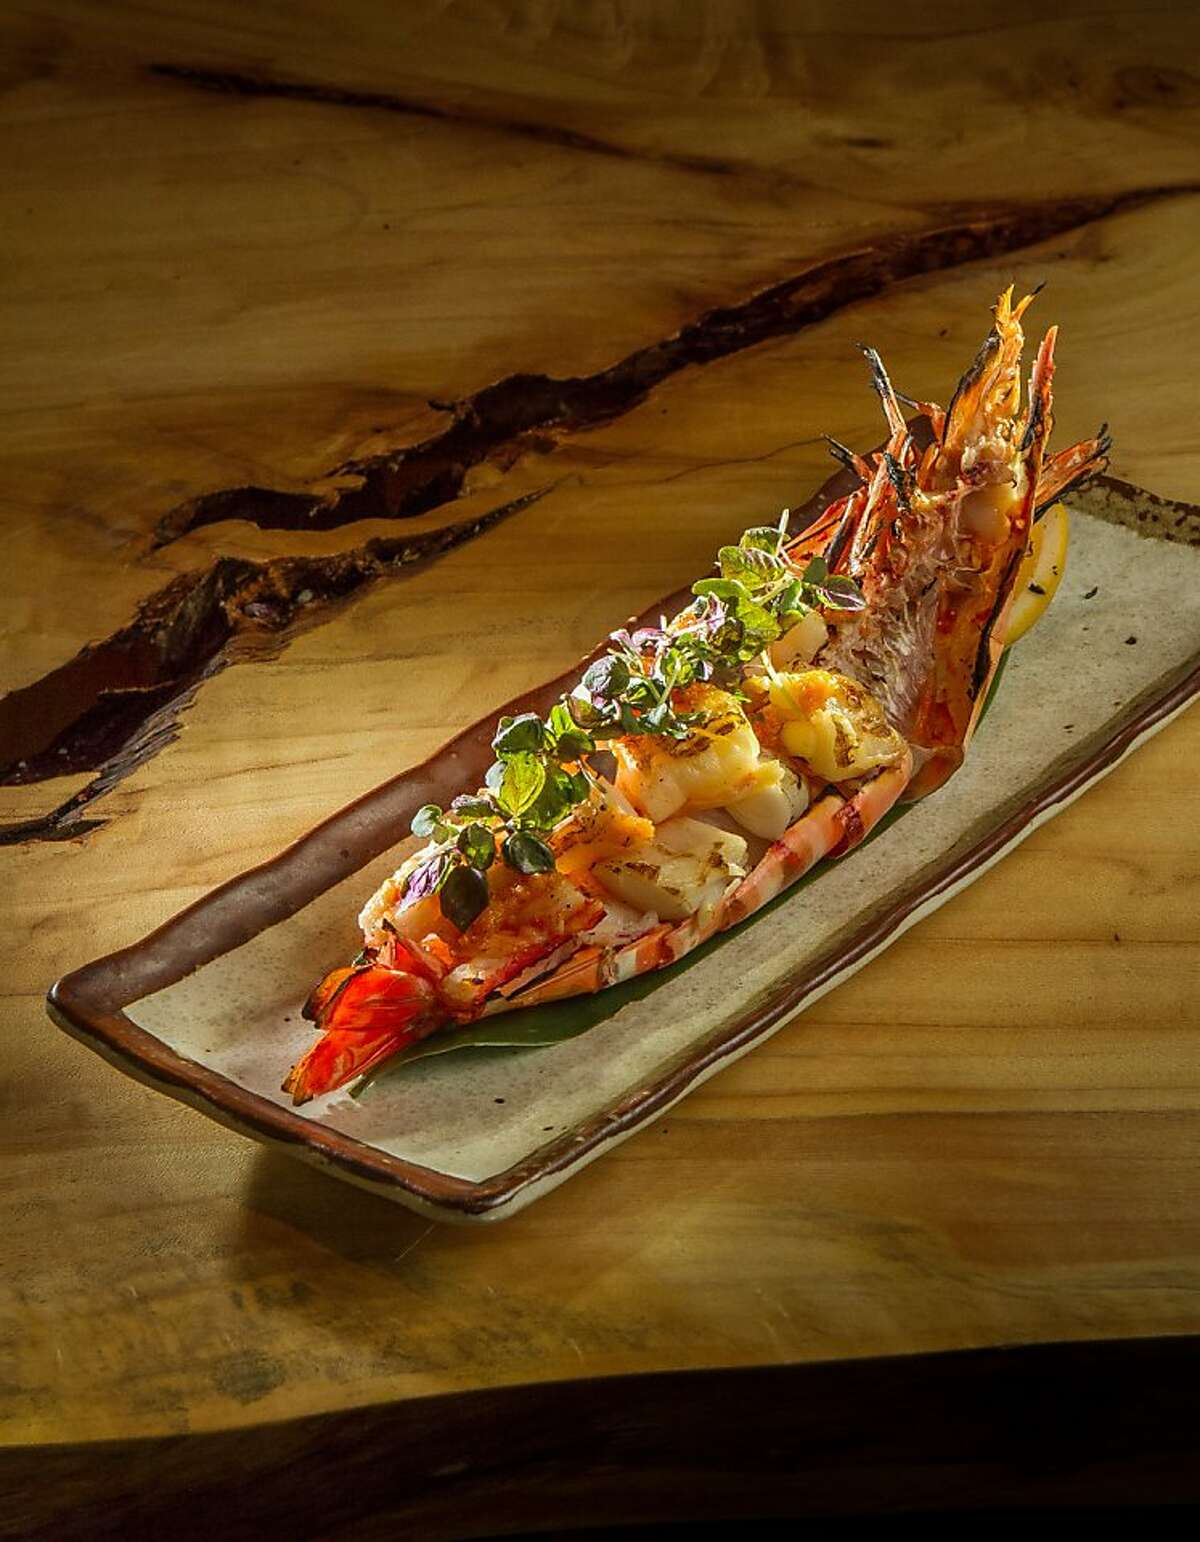 The Madagascan Tiger Prawns at Roka Akor in San Francisco, Calif., are seen on Friday, August 16th, 2013.